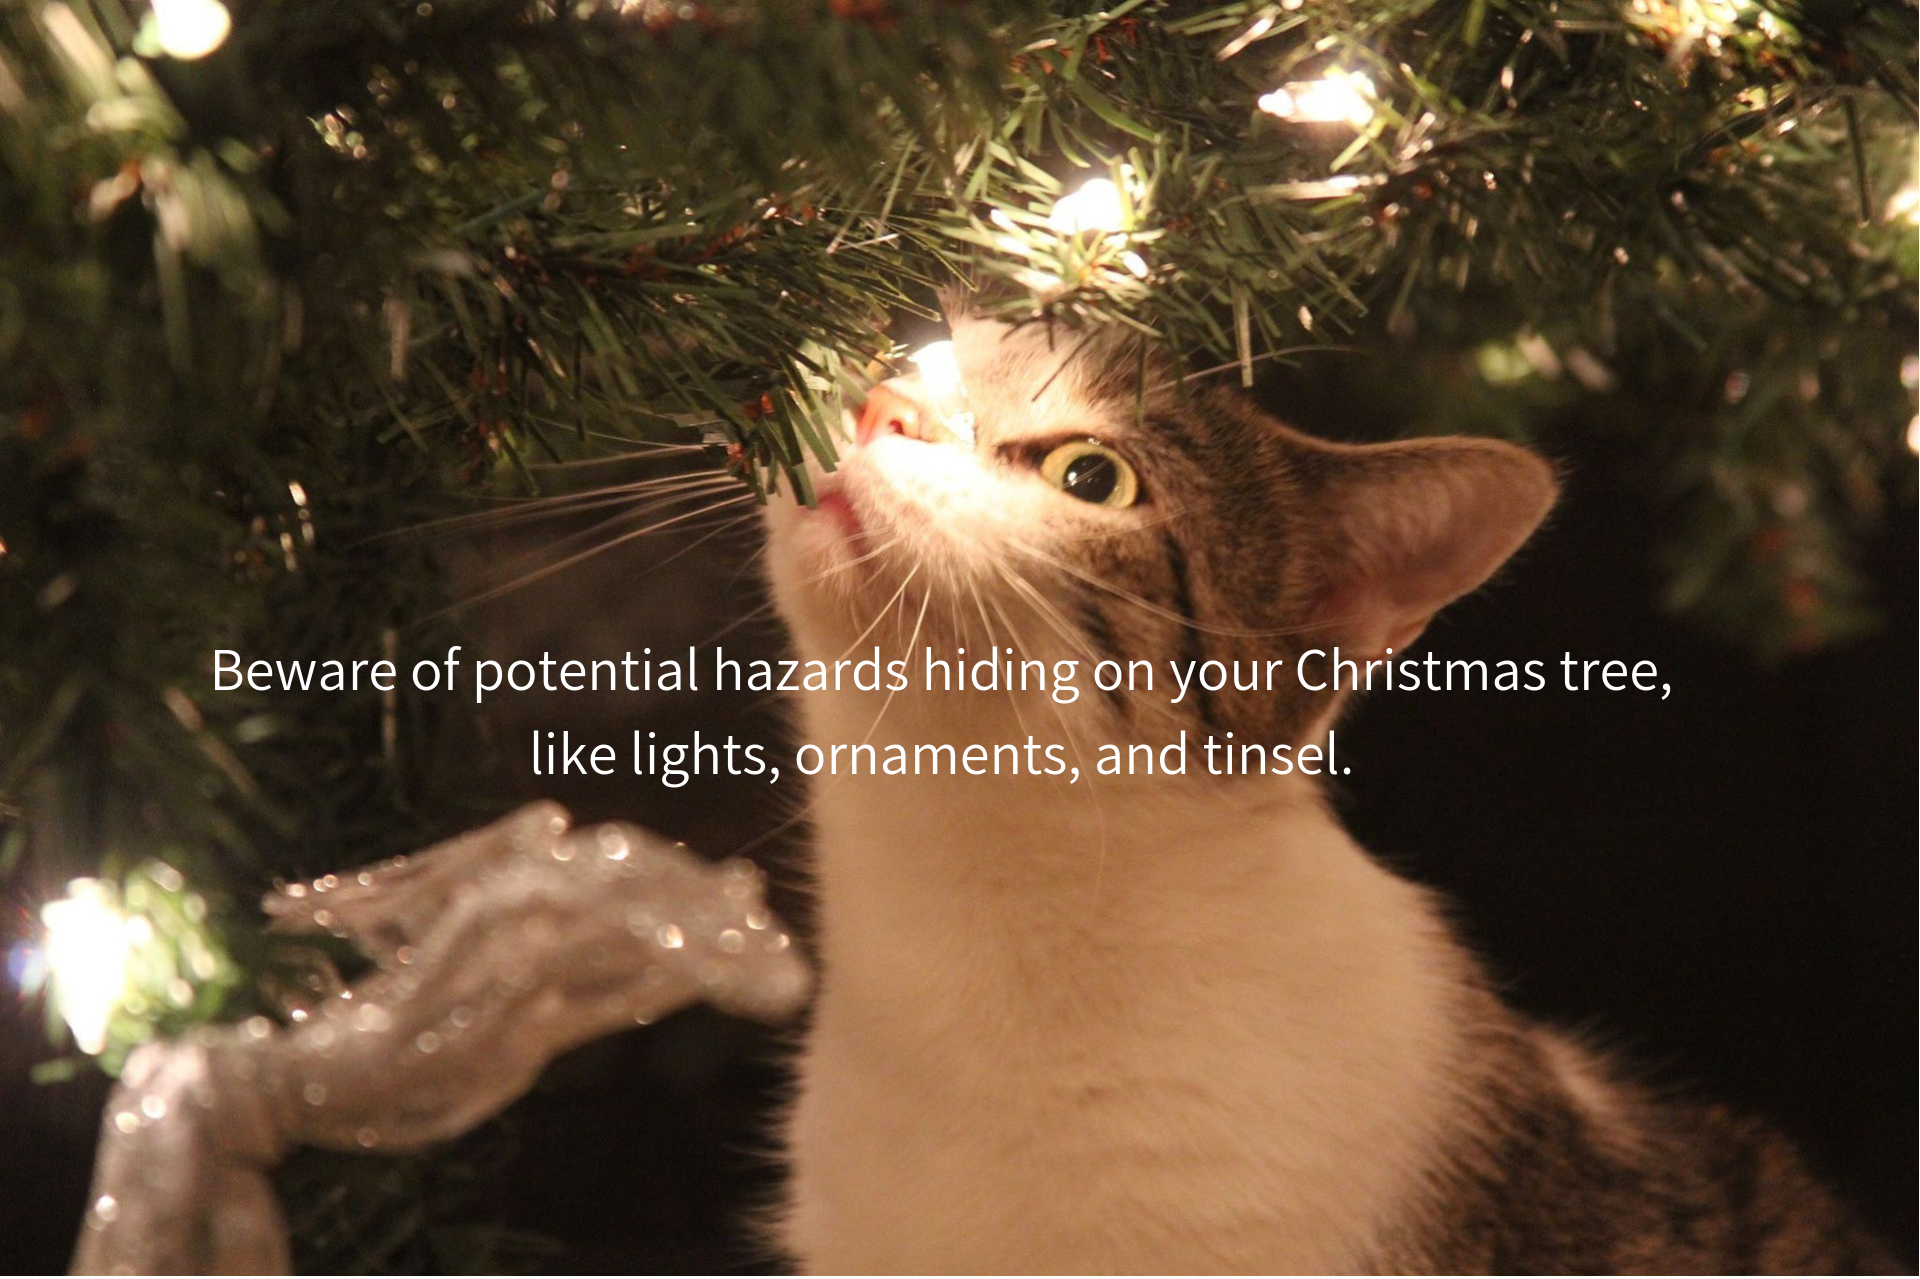 Beware of potential hazards hiding on your tree, like lights, ornaments, and tinsel.